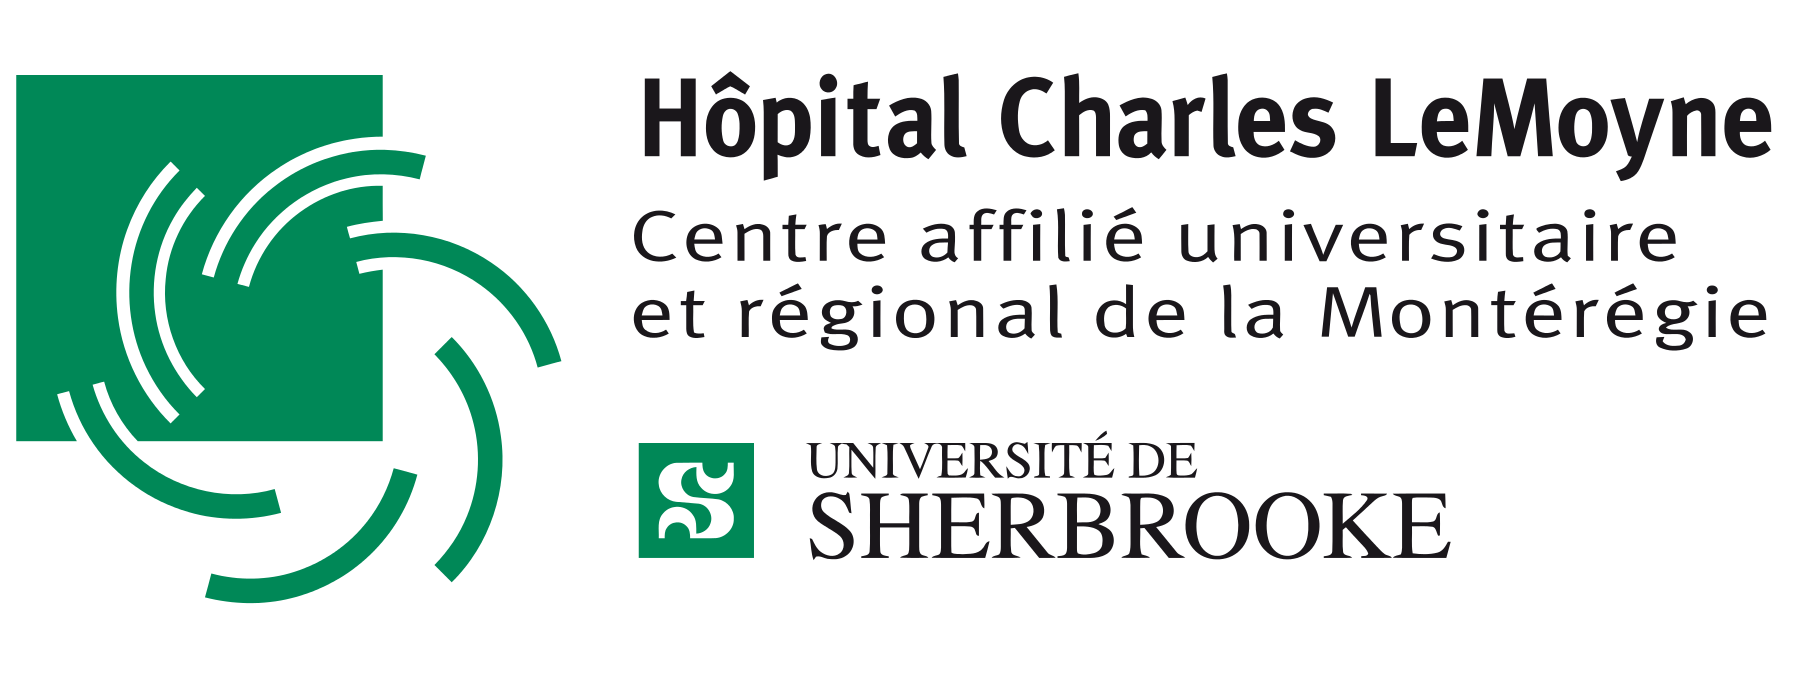 diabete document hopital charles lemoyne